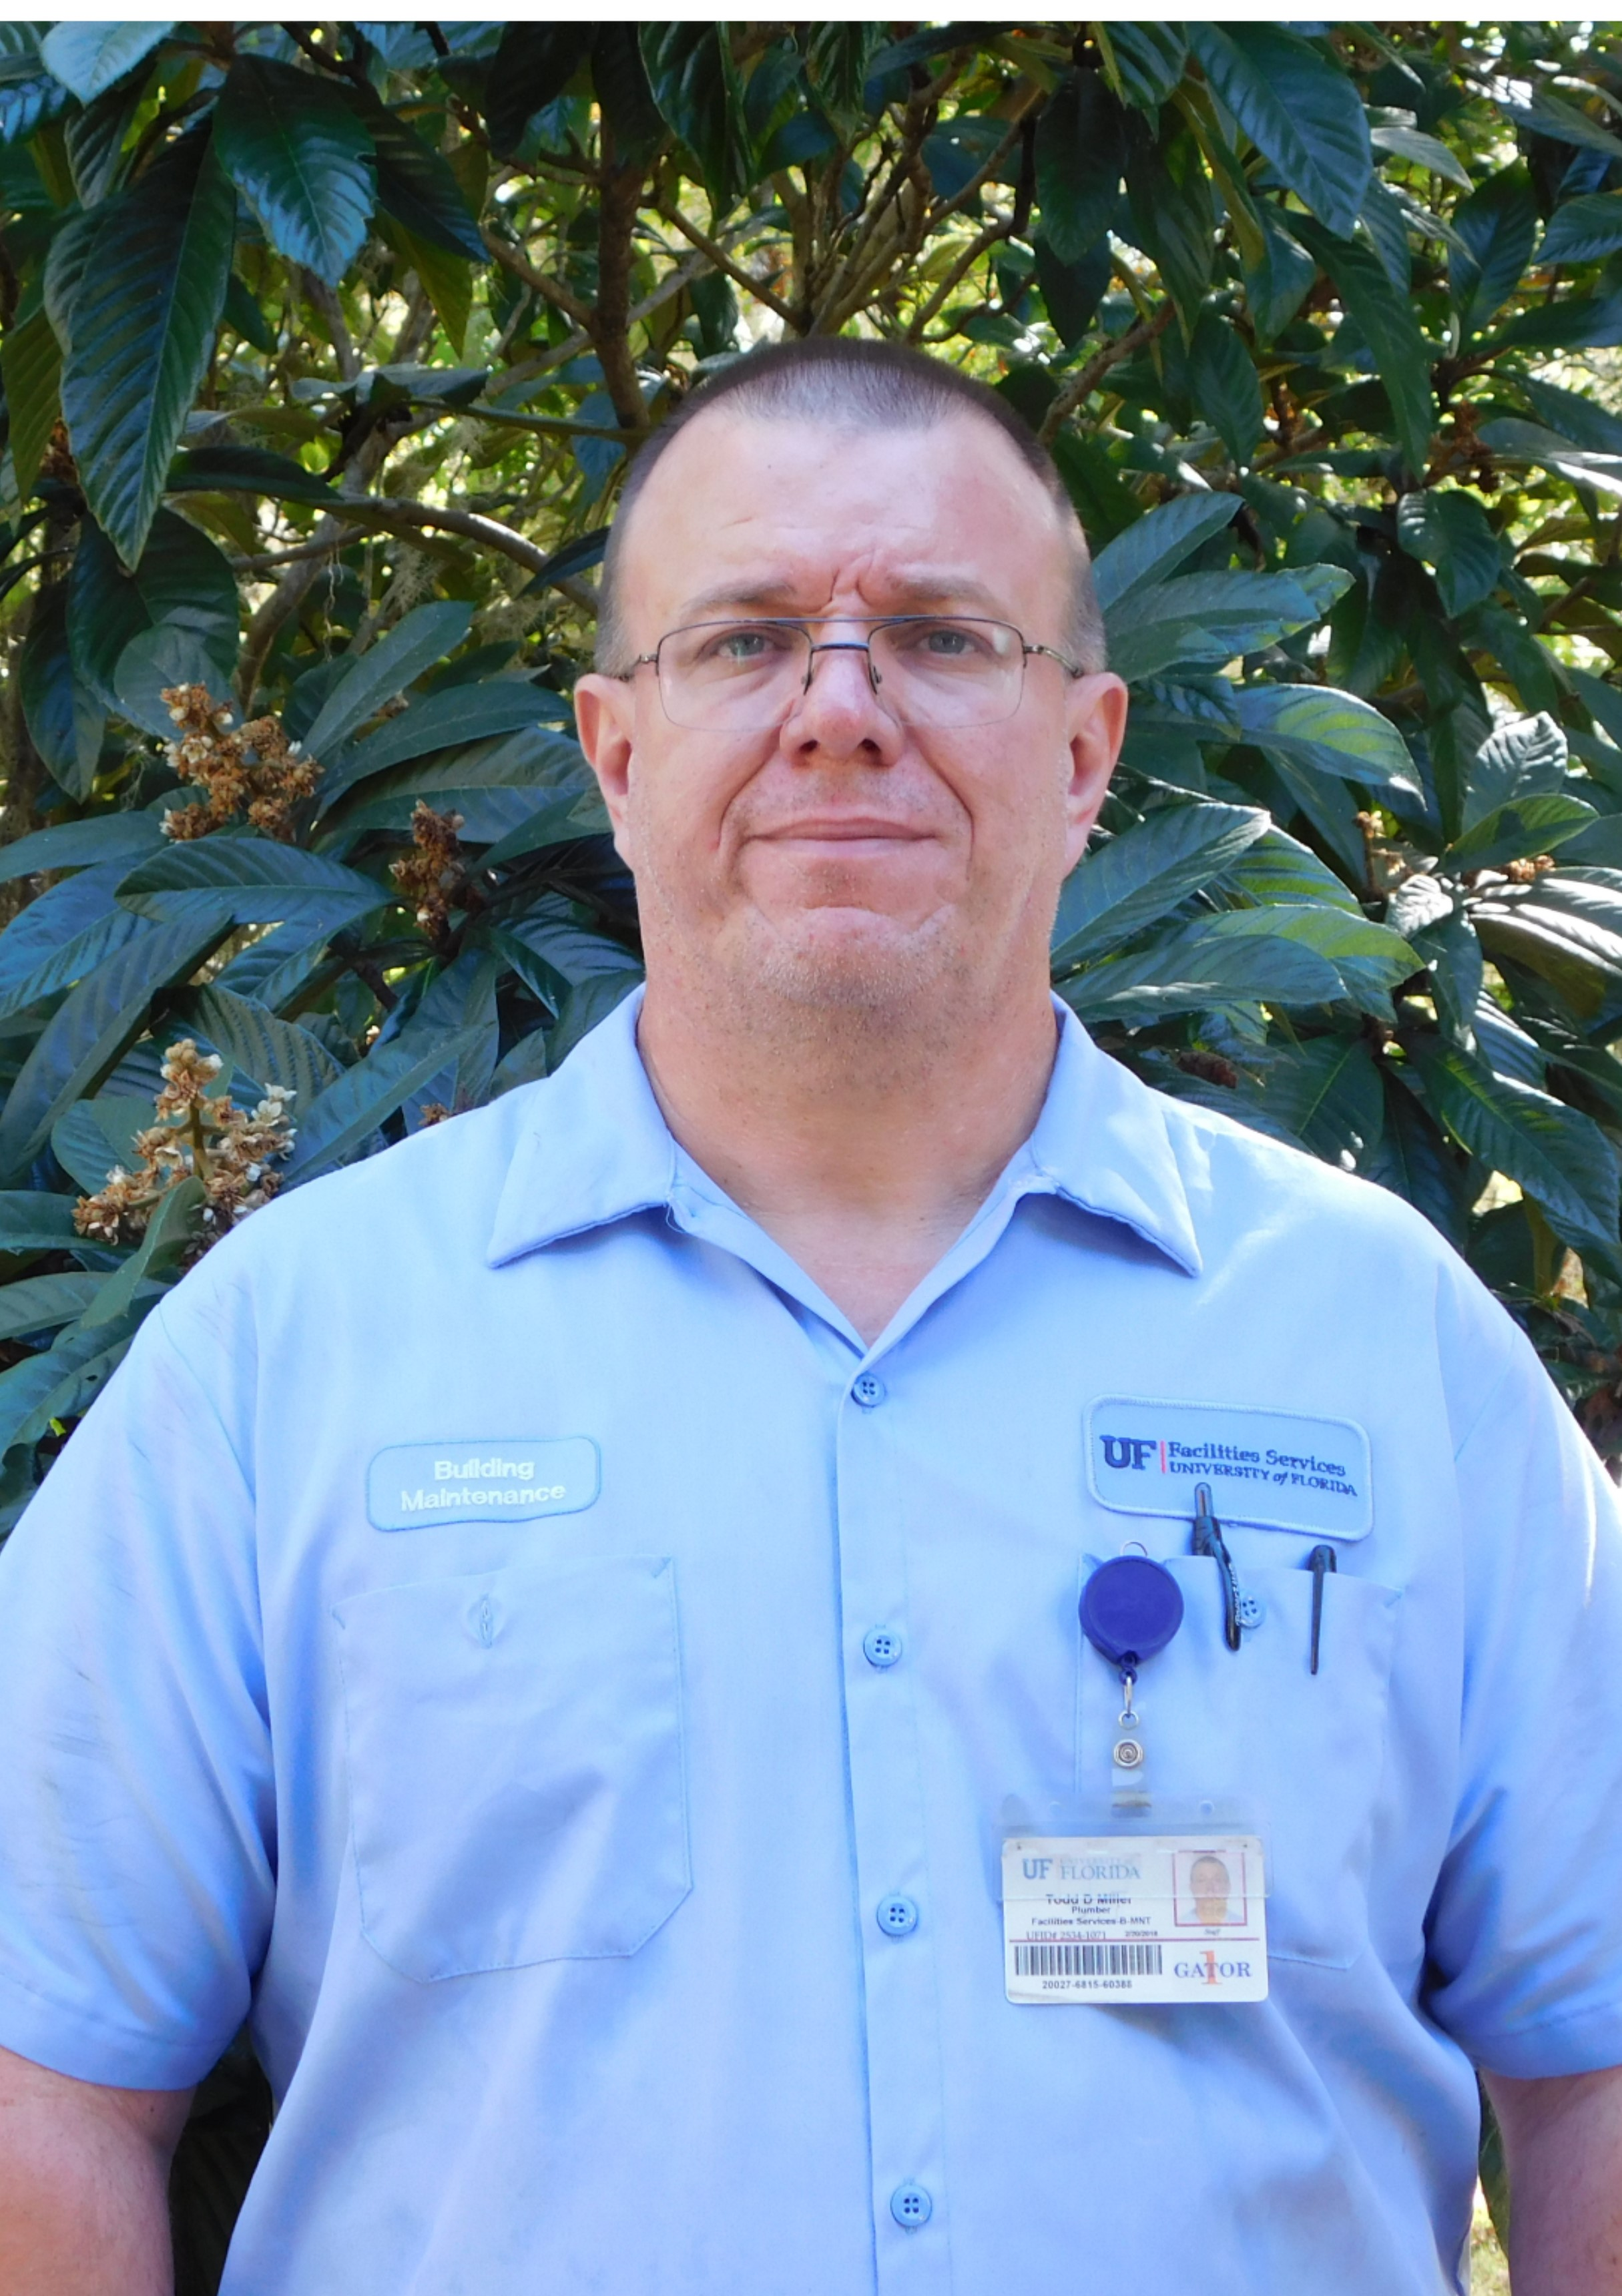 Image of Todd Miller